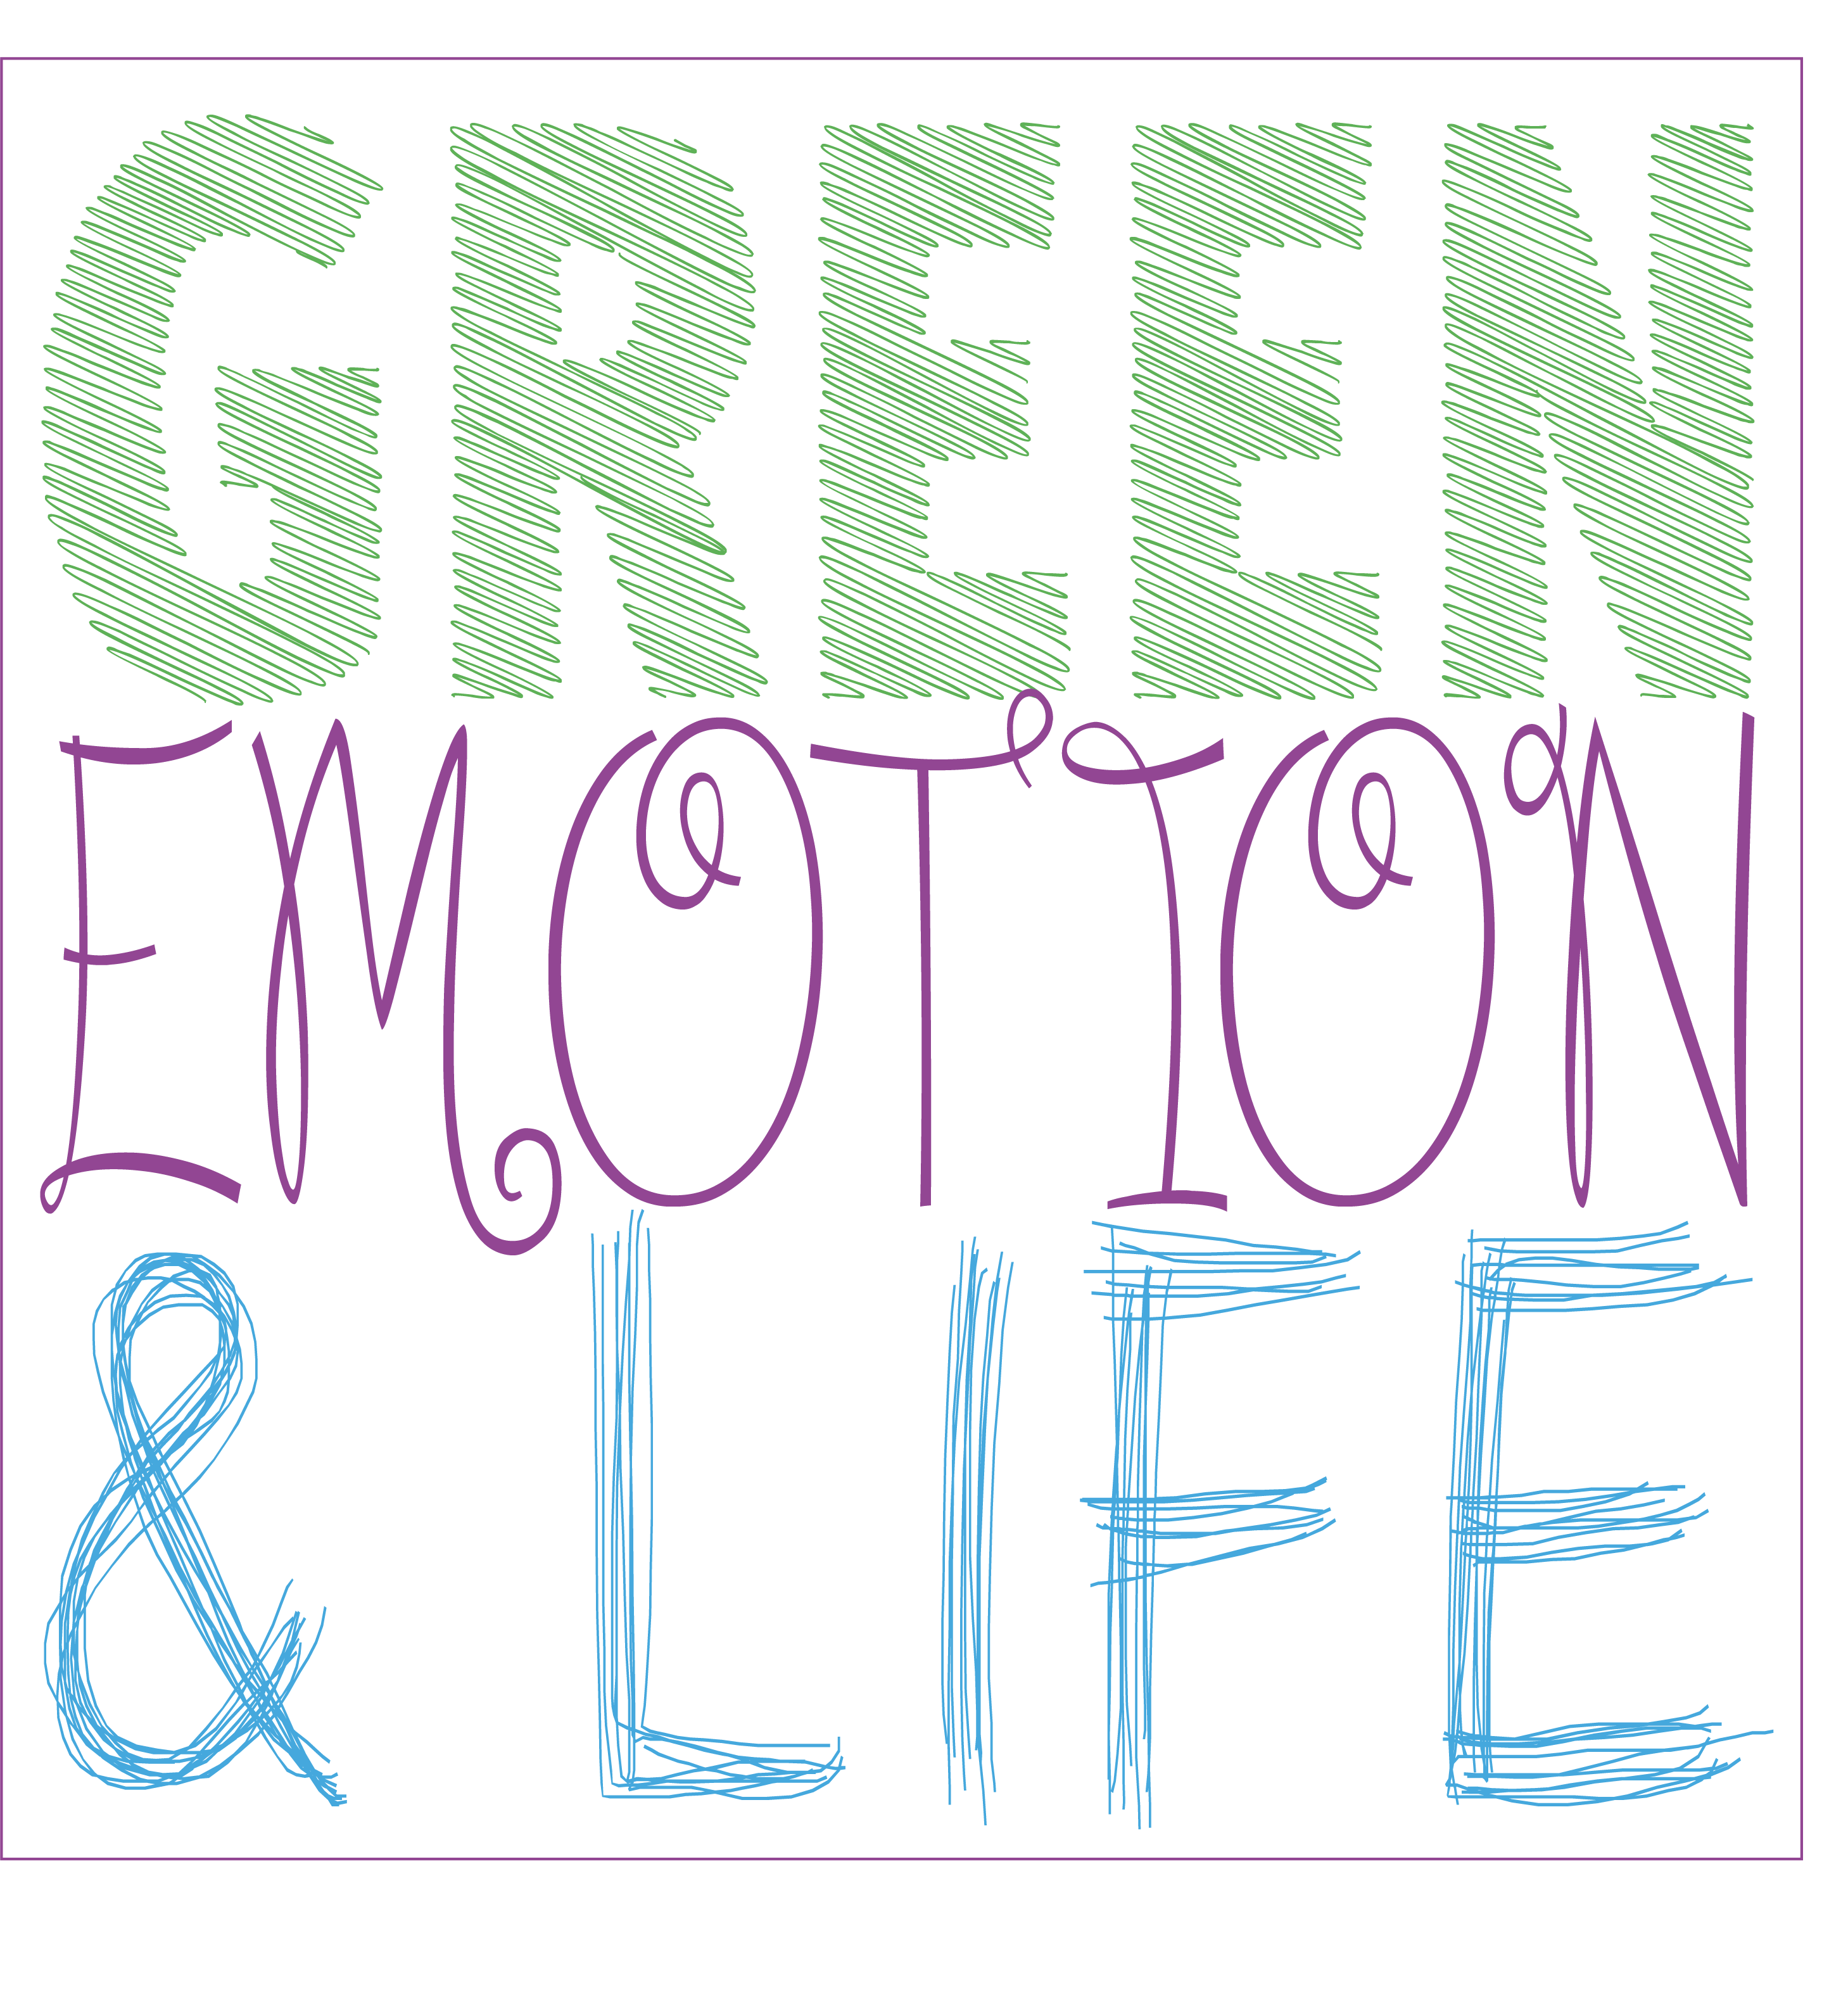 Green emotion and life